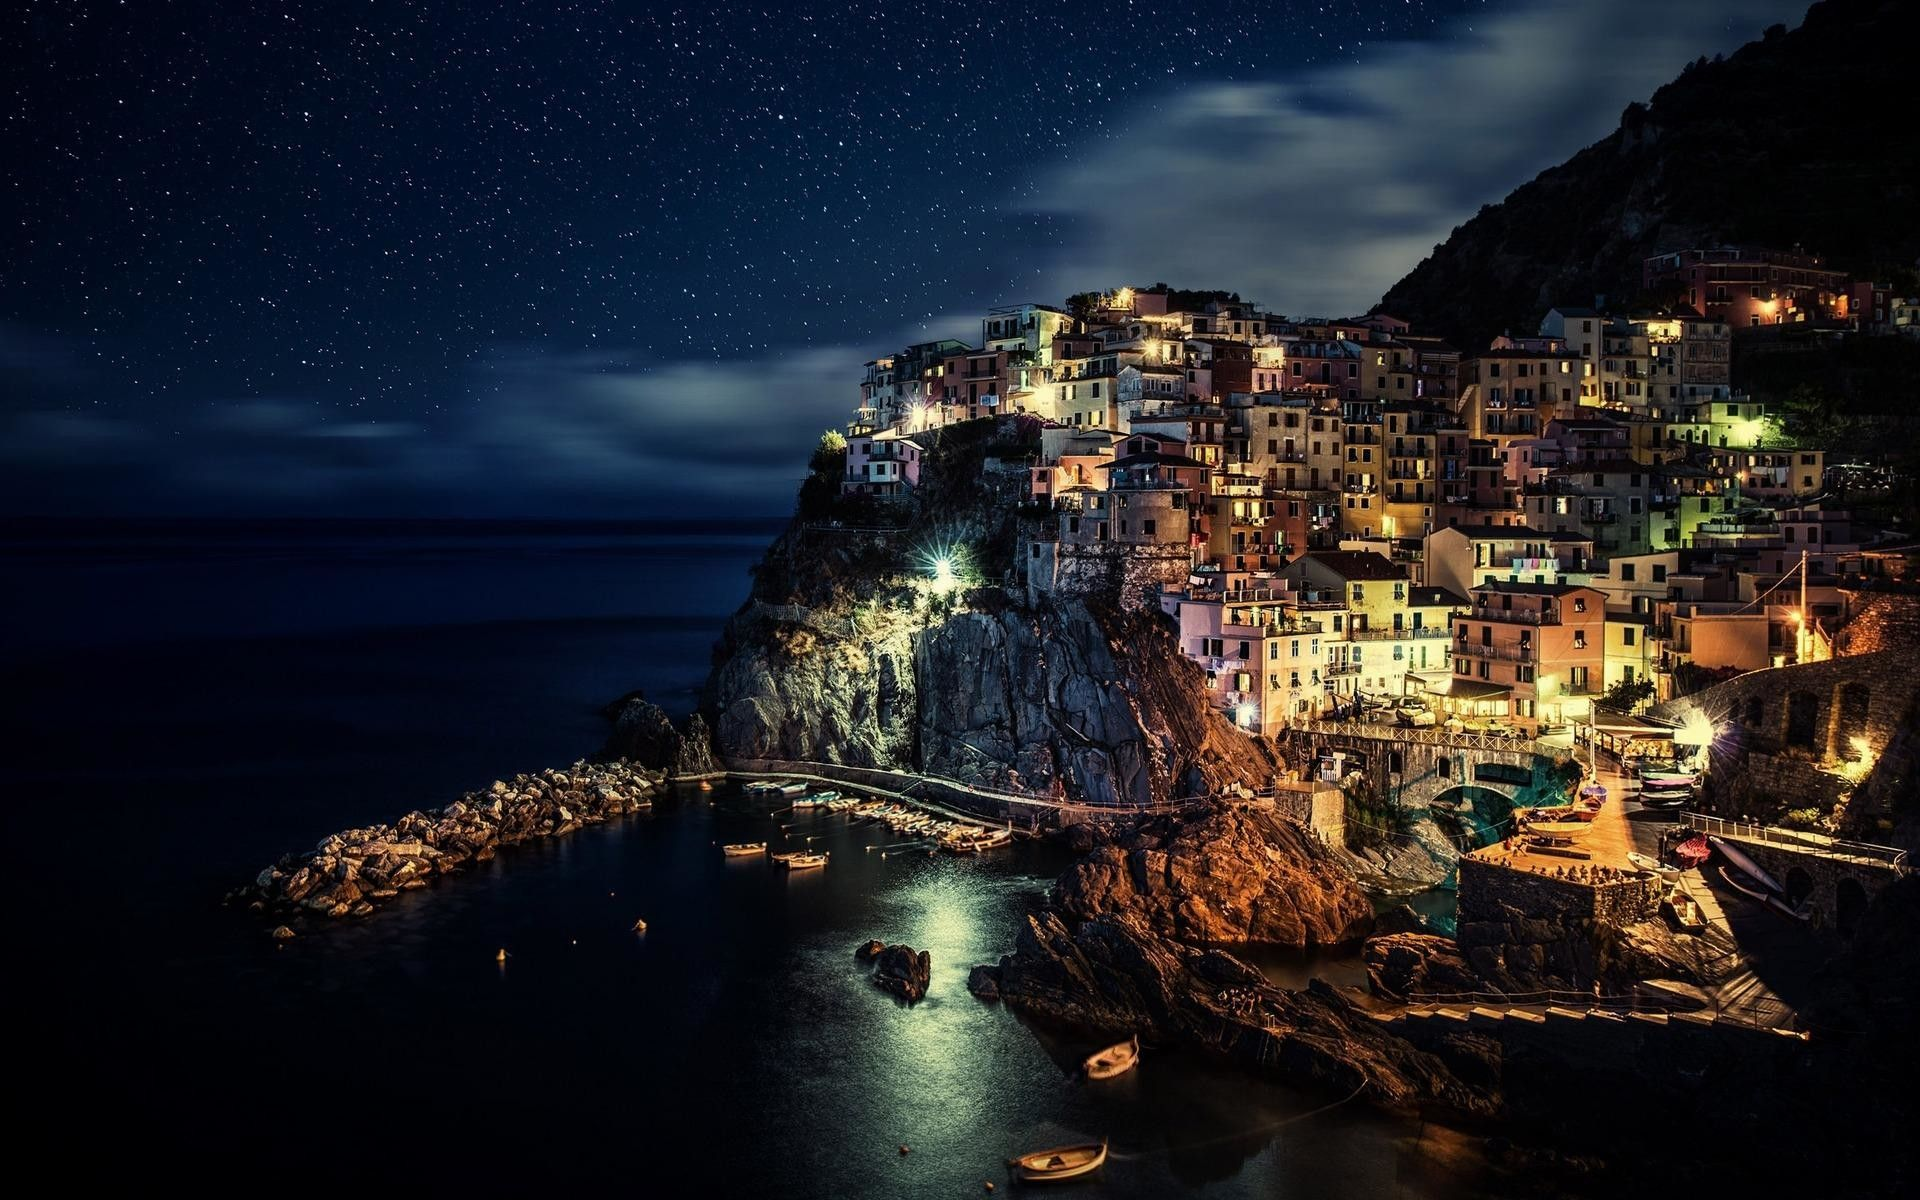 italy images hd